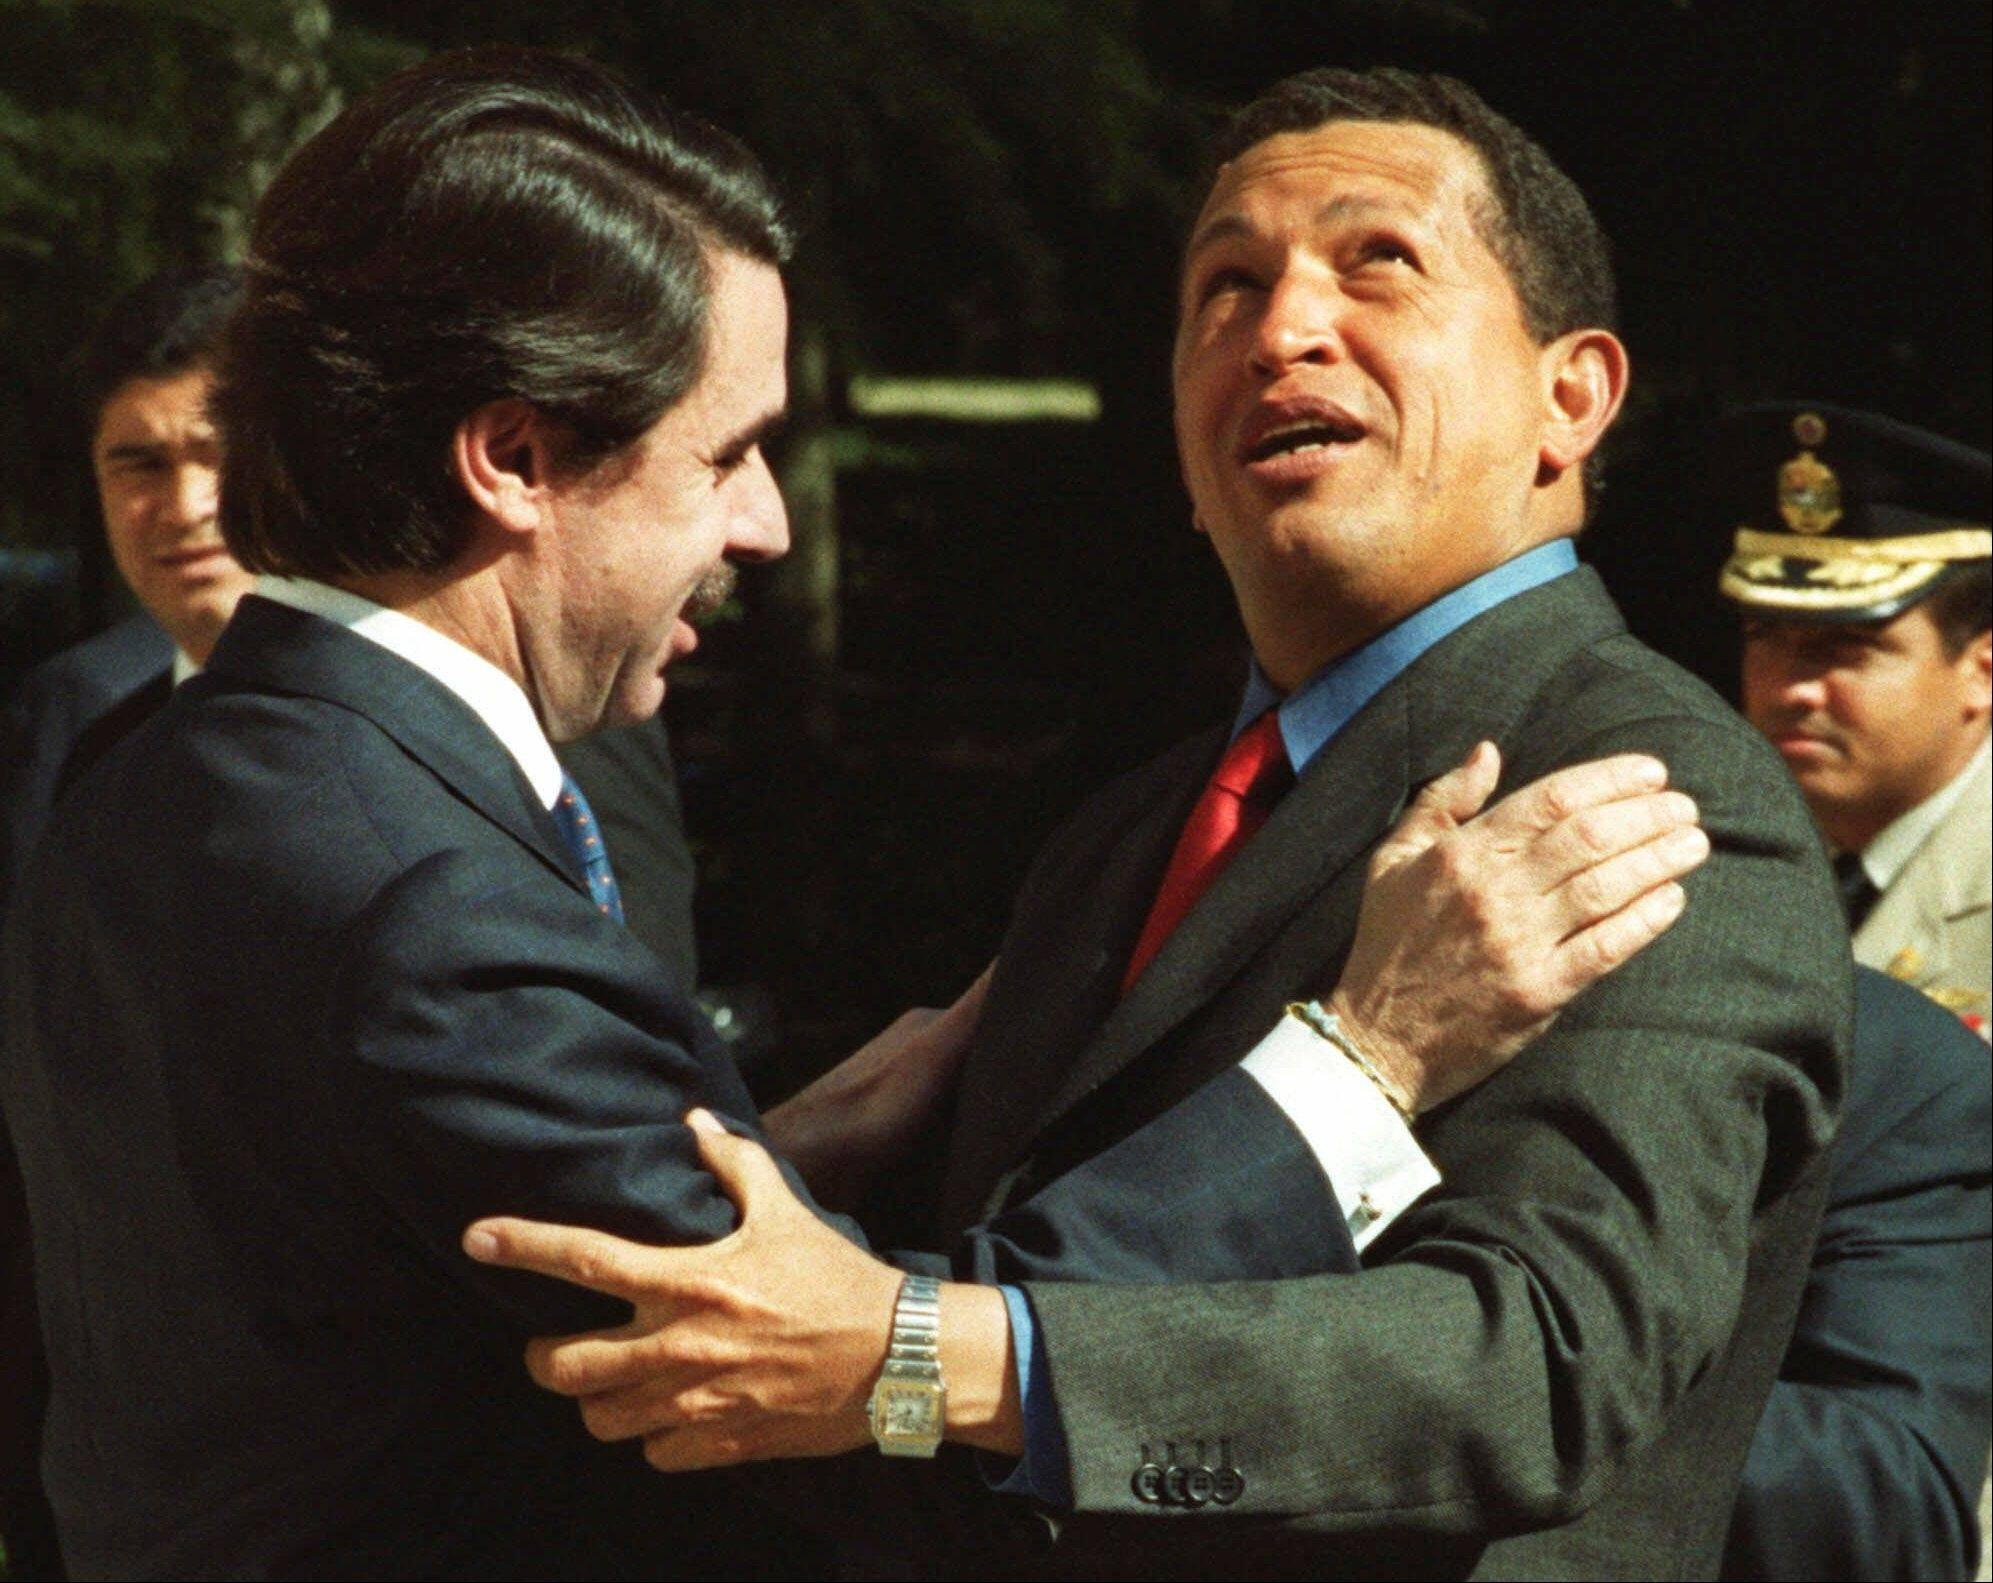 In this Feb. 21, 2000 file photo, Venezuela's President Hugo Chavez, right, looks up while being embraced by Spain's Prime Minister Jose Maria Aznar during Chavez's visit to the Moncloa palace in Madrid, Spain.